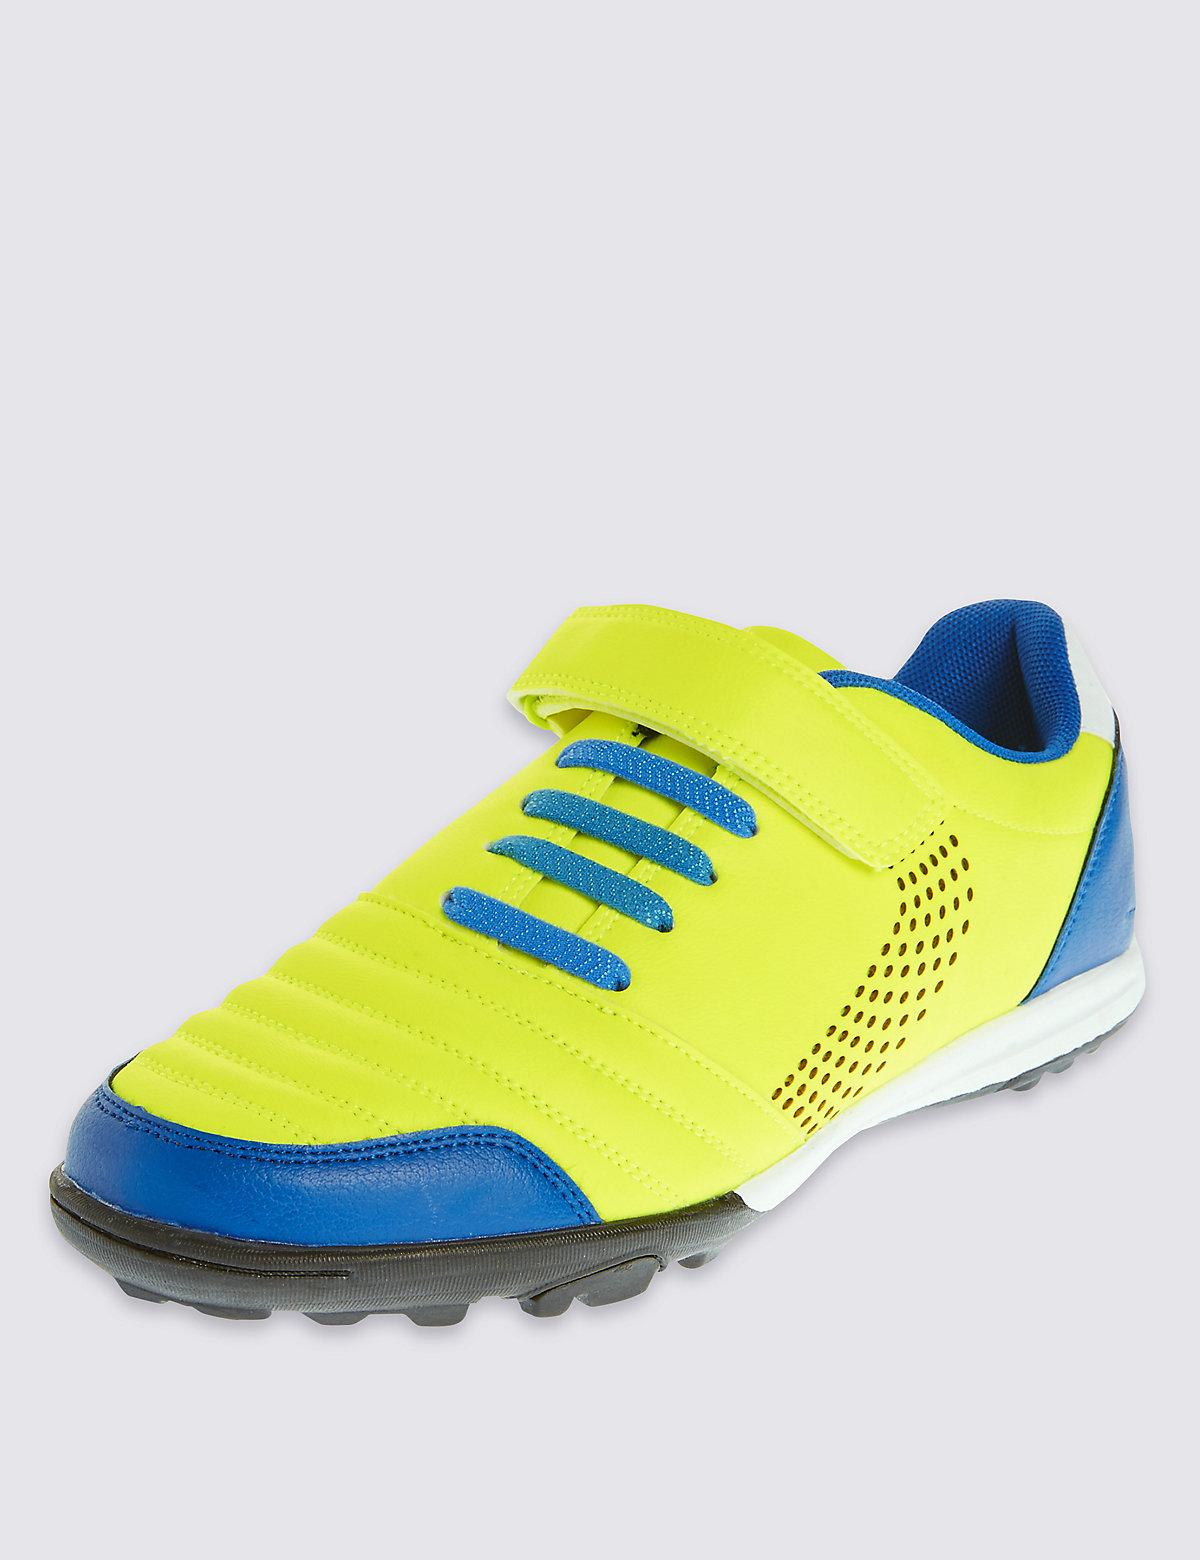 Kids Freshfeet Astro & Riptape Bright Trainers with Silver Technology